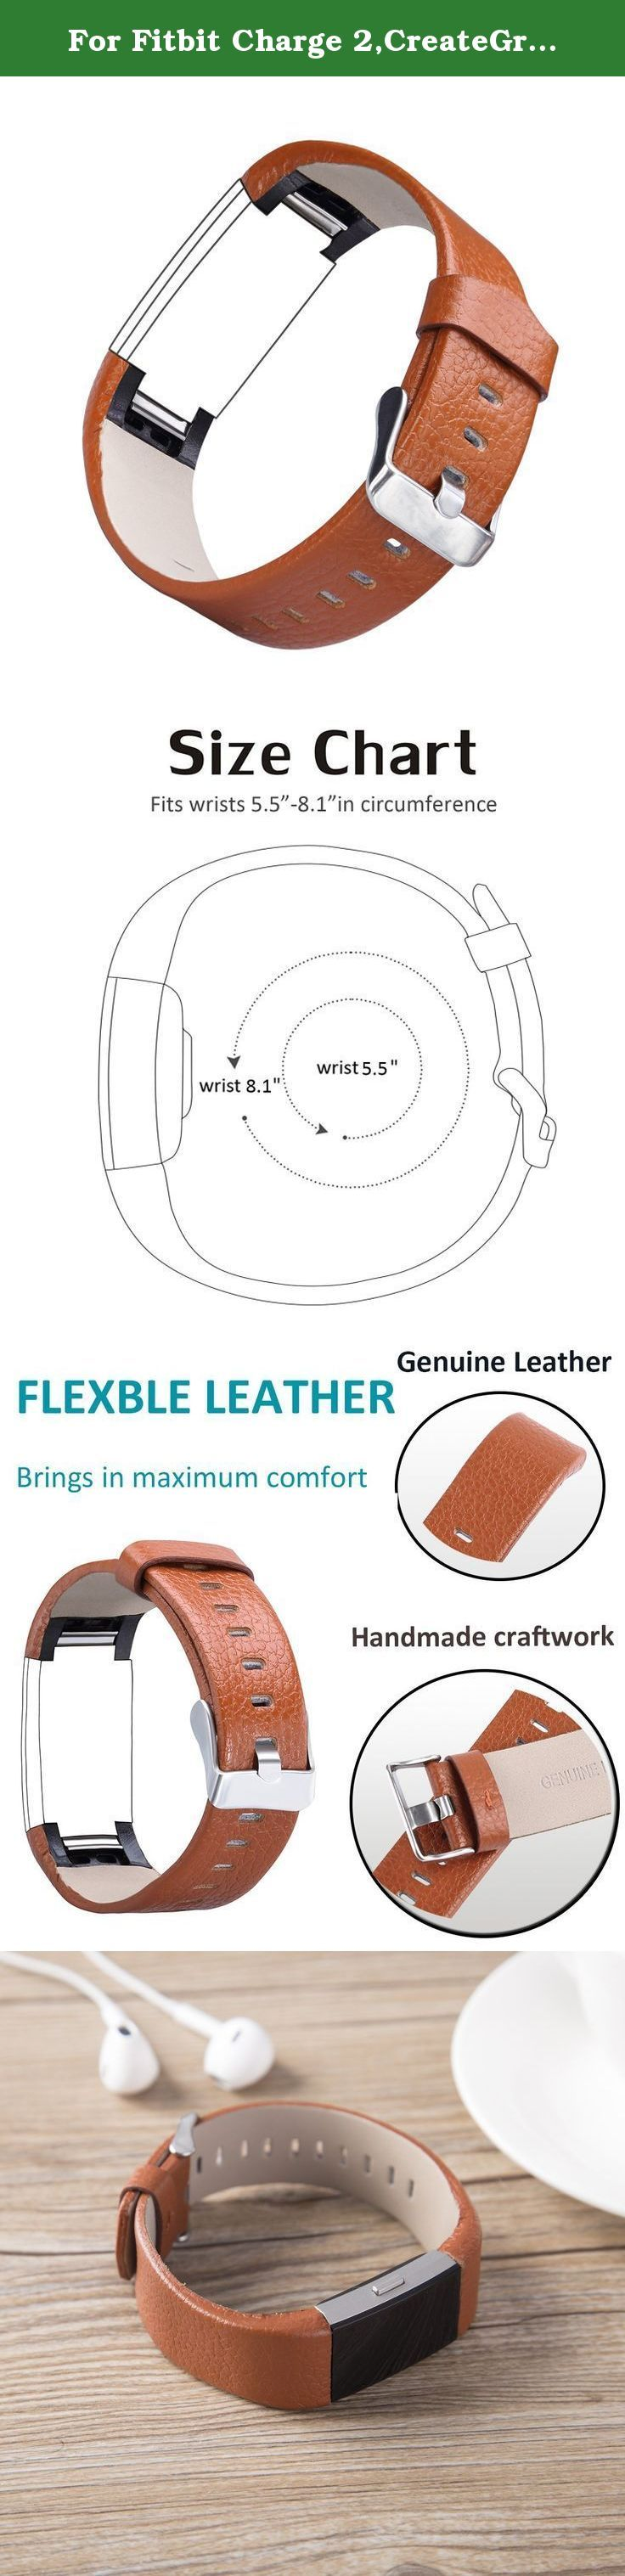 For Fitbit Charge 2,CreateGreat Leather Replacement Band for Charge 2 /Charge 2 Fitbit/Fitbit Charge 2. for fitbit charge 2 /fitbit charge 2 bands /charge 2 /fitbit replacement bands /fitbit charge 2 band /charge 2 bands /fitbit wristband /fitbit watch /charge bands /fitbit charge 2 heart rate /fitbit charge 2 large /charge 2 fit bit /fitbit charge 2 replacement bands /fitbit charge 2 small /charge 2 bands small /fitbit charge 2 wristband /fitbit charge 2 bands small /charge 2 wristband...